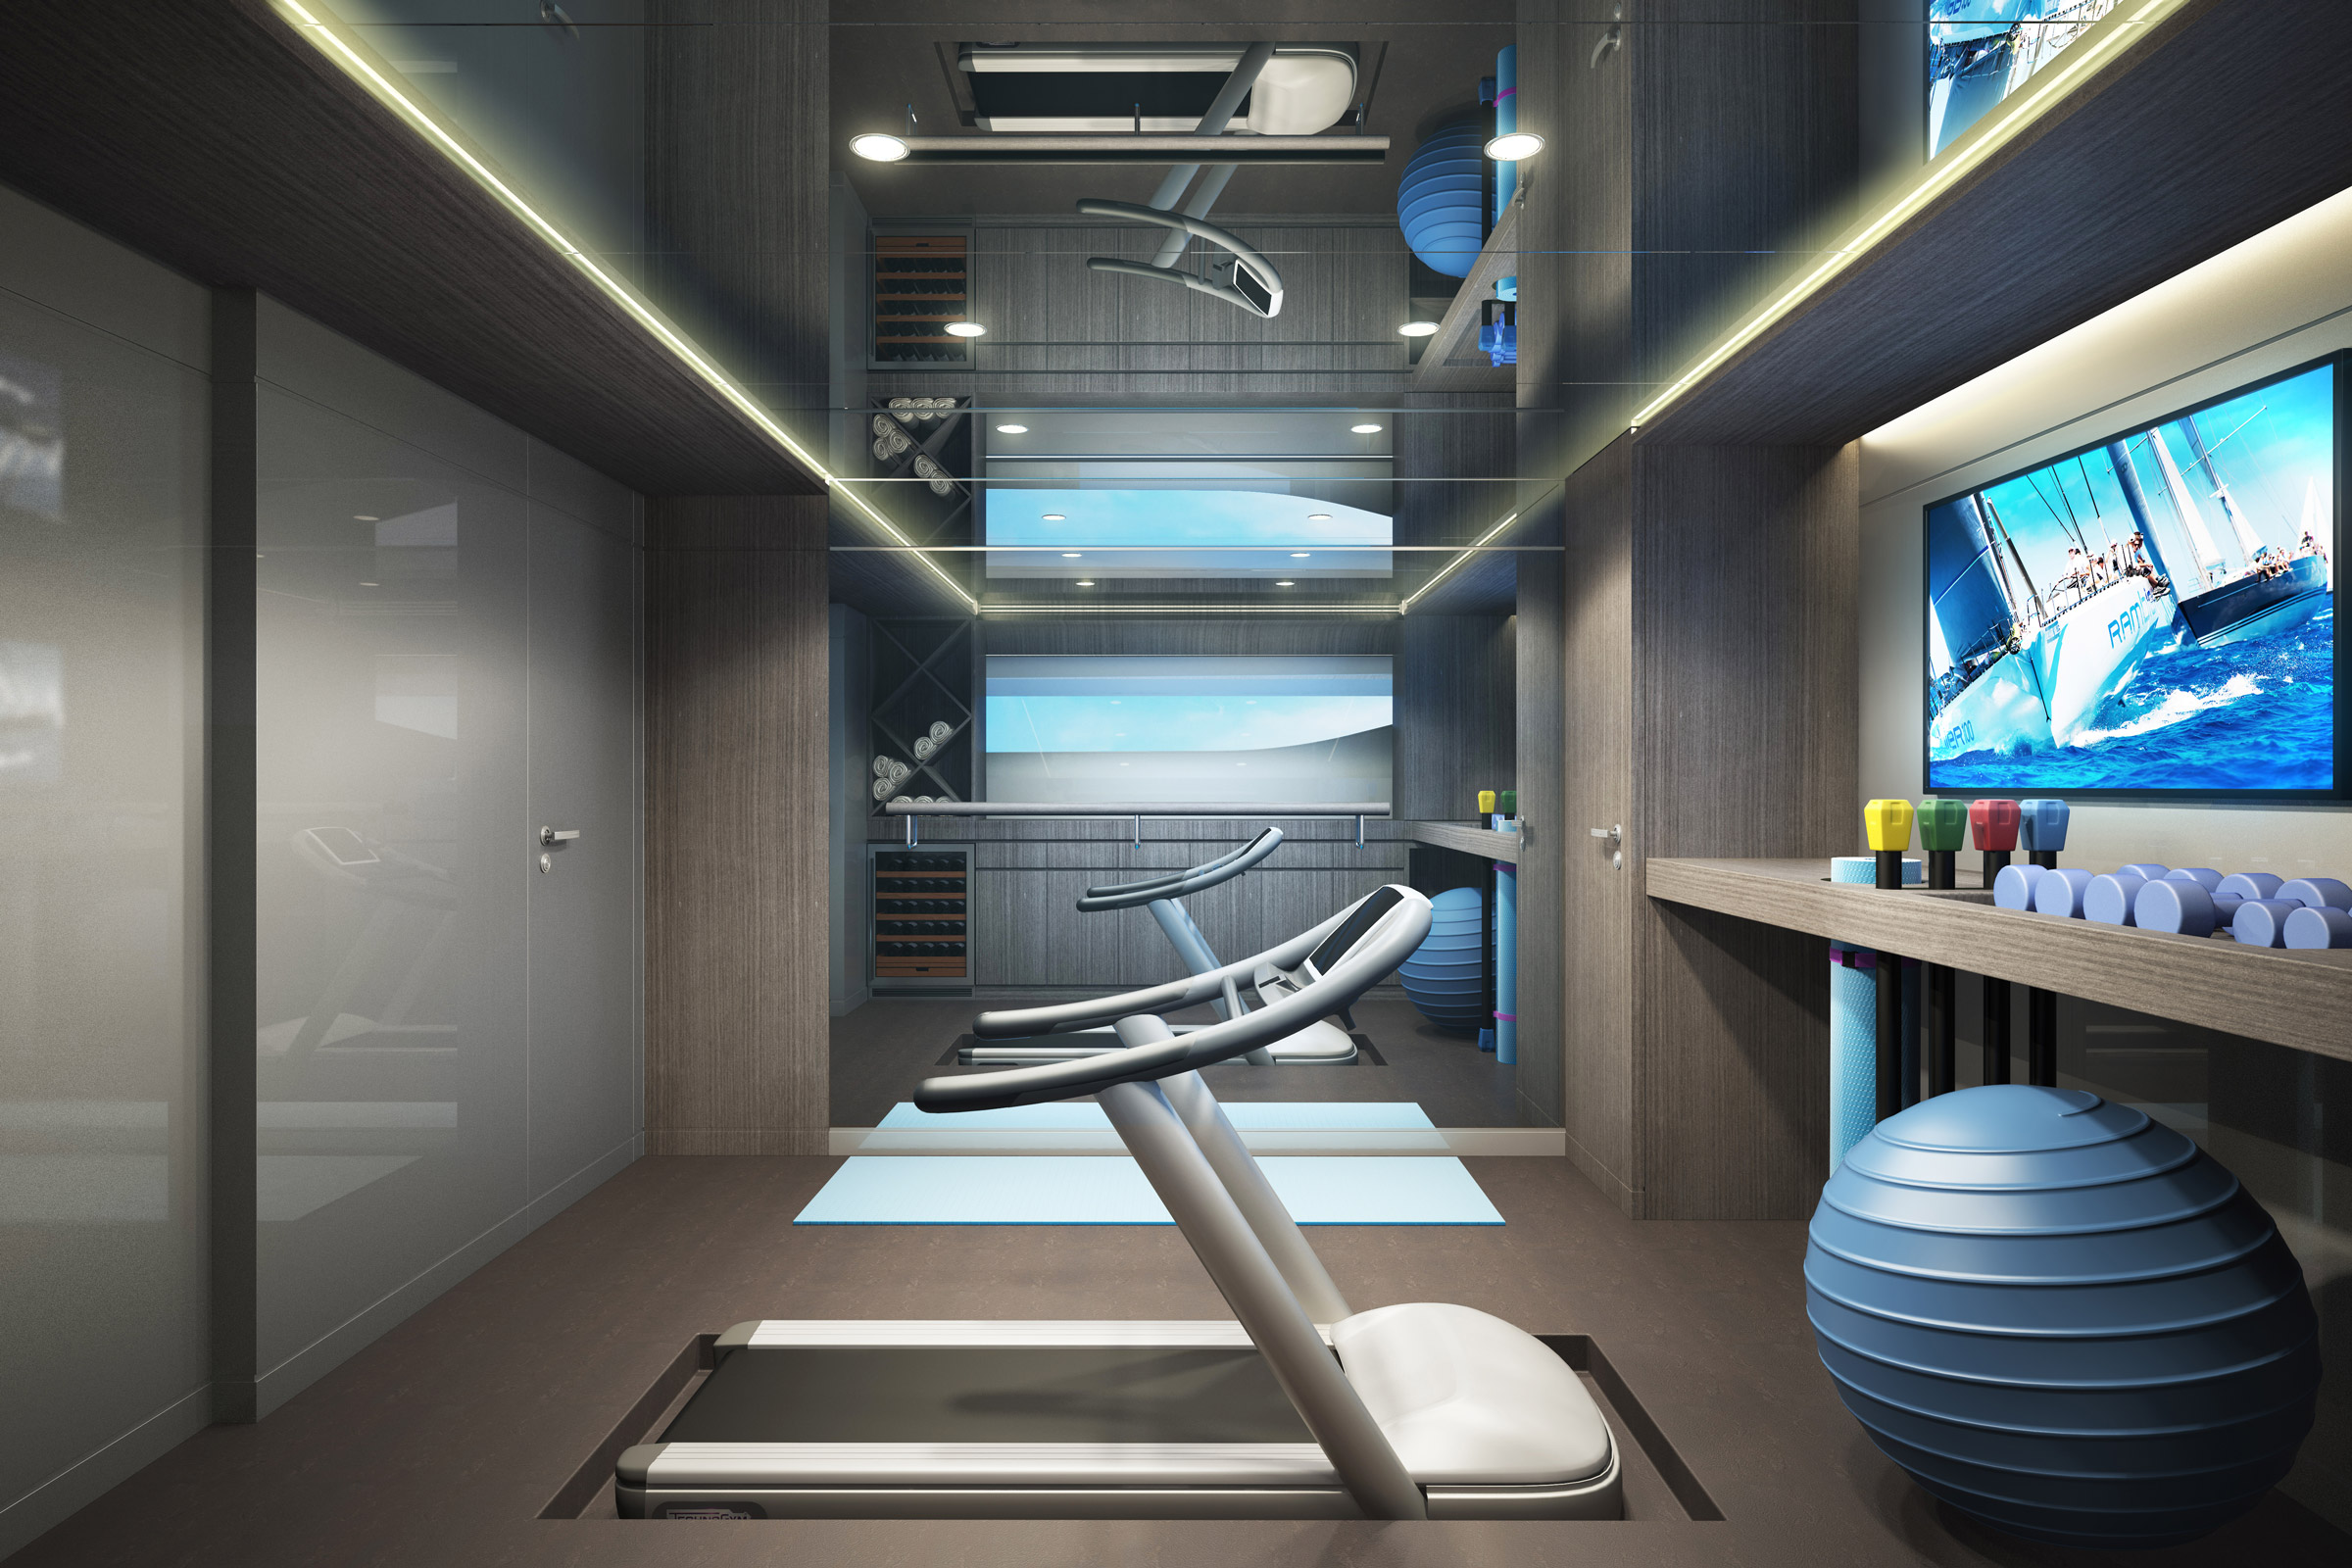 HH_Yacht_Exercise_Room_V2_005